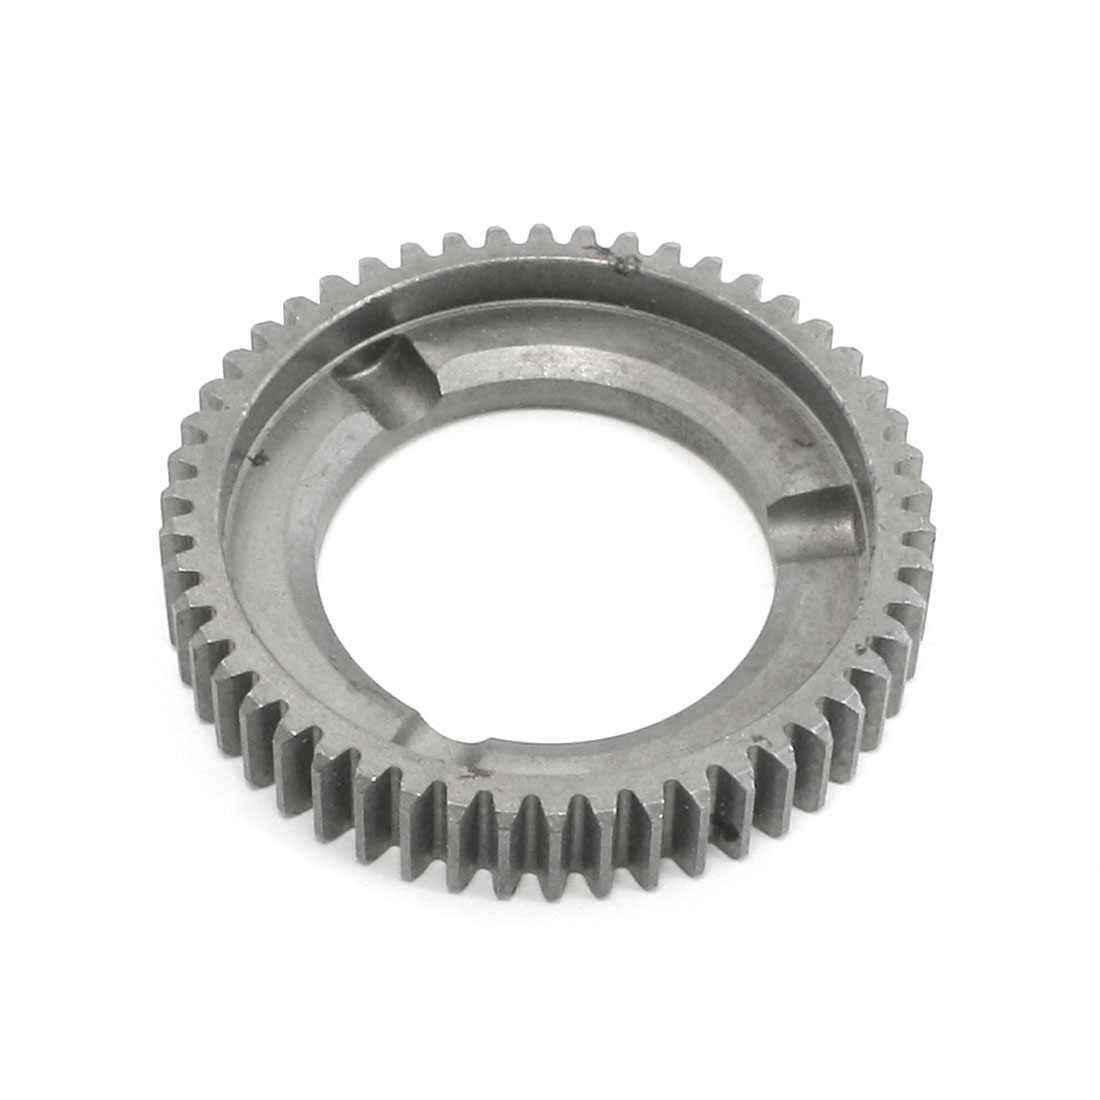 Electric Tool Repair Part Gear Wheel 50 Teeth for Bosch 11218 Rotary Hammer